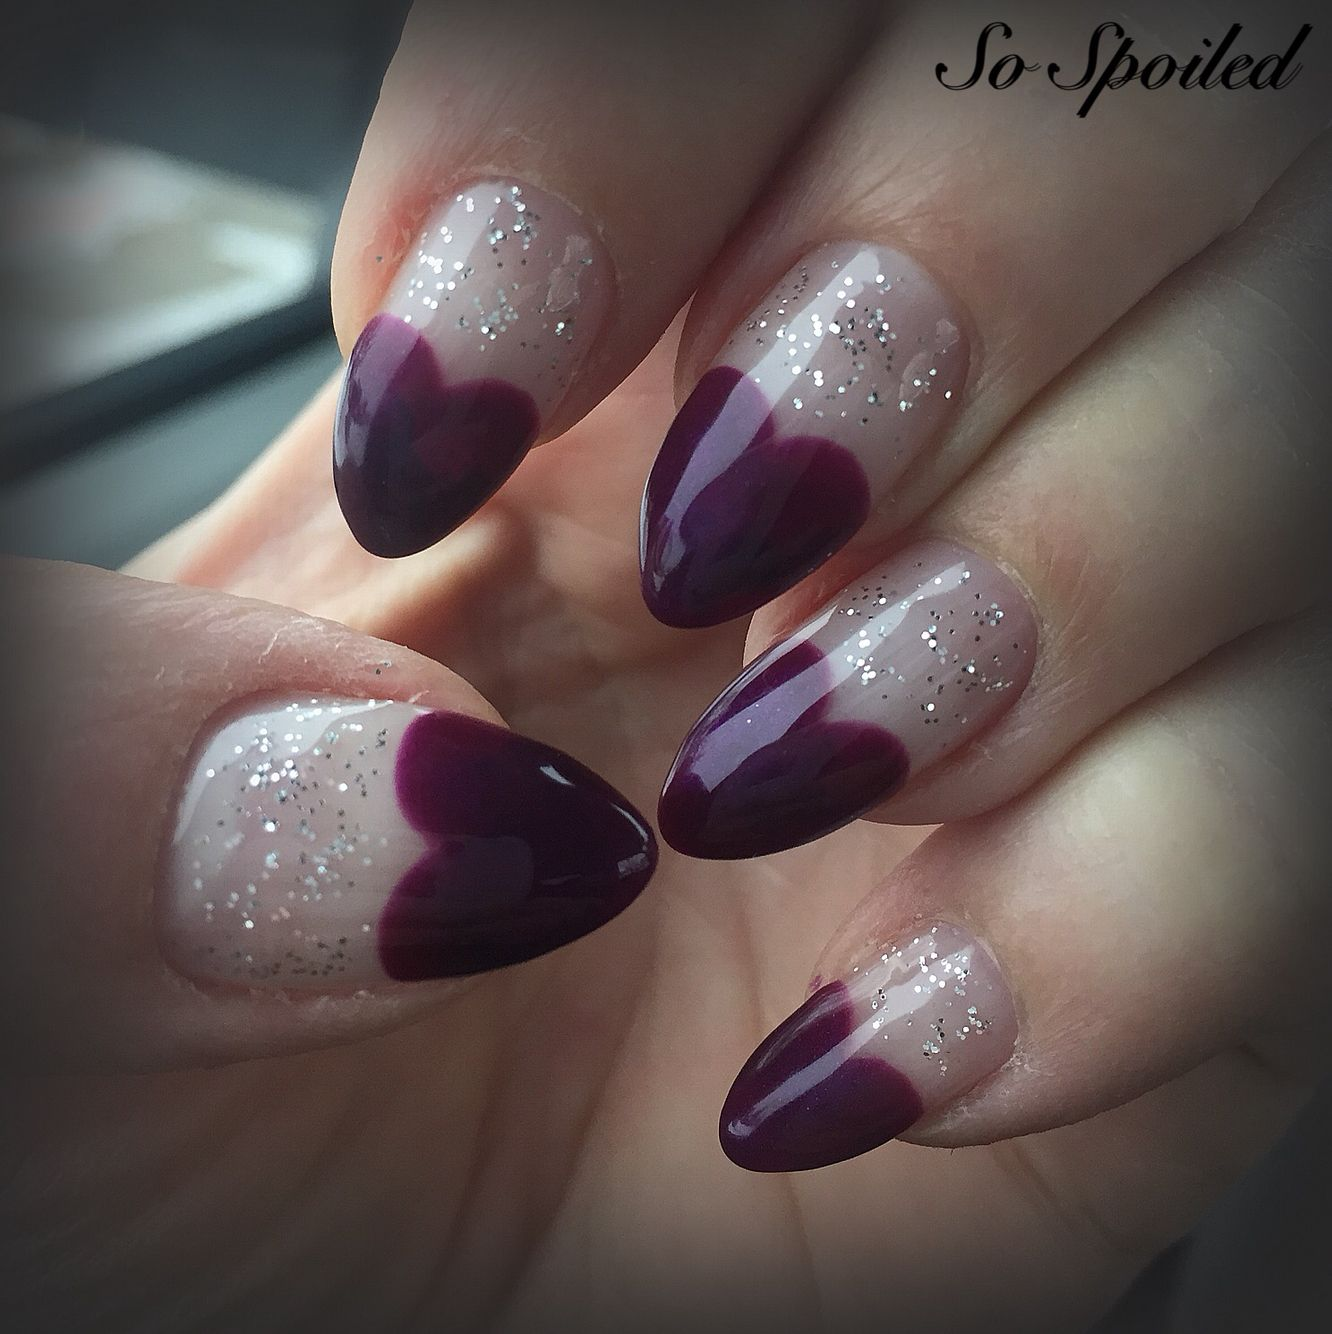 Gel Nageldesign 2015 Bio Sculpture Gel Nail Art & Design. Valentine's Nails